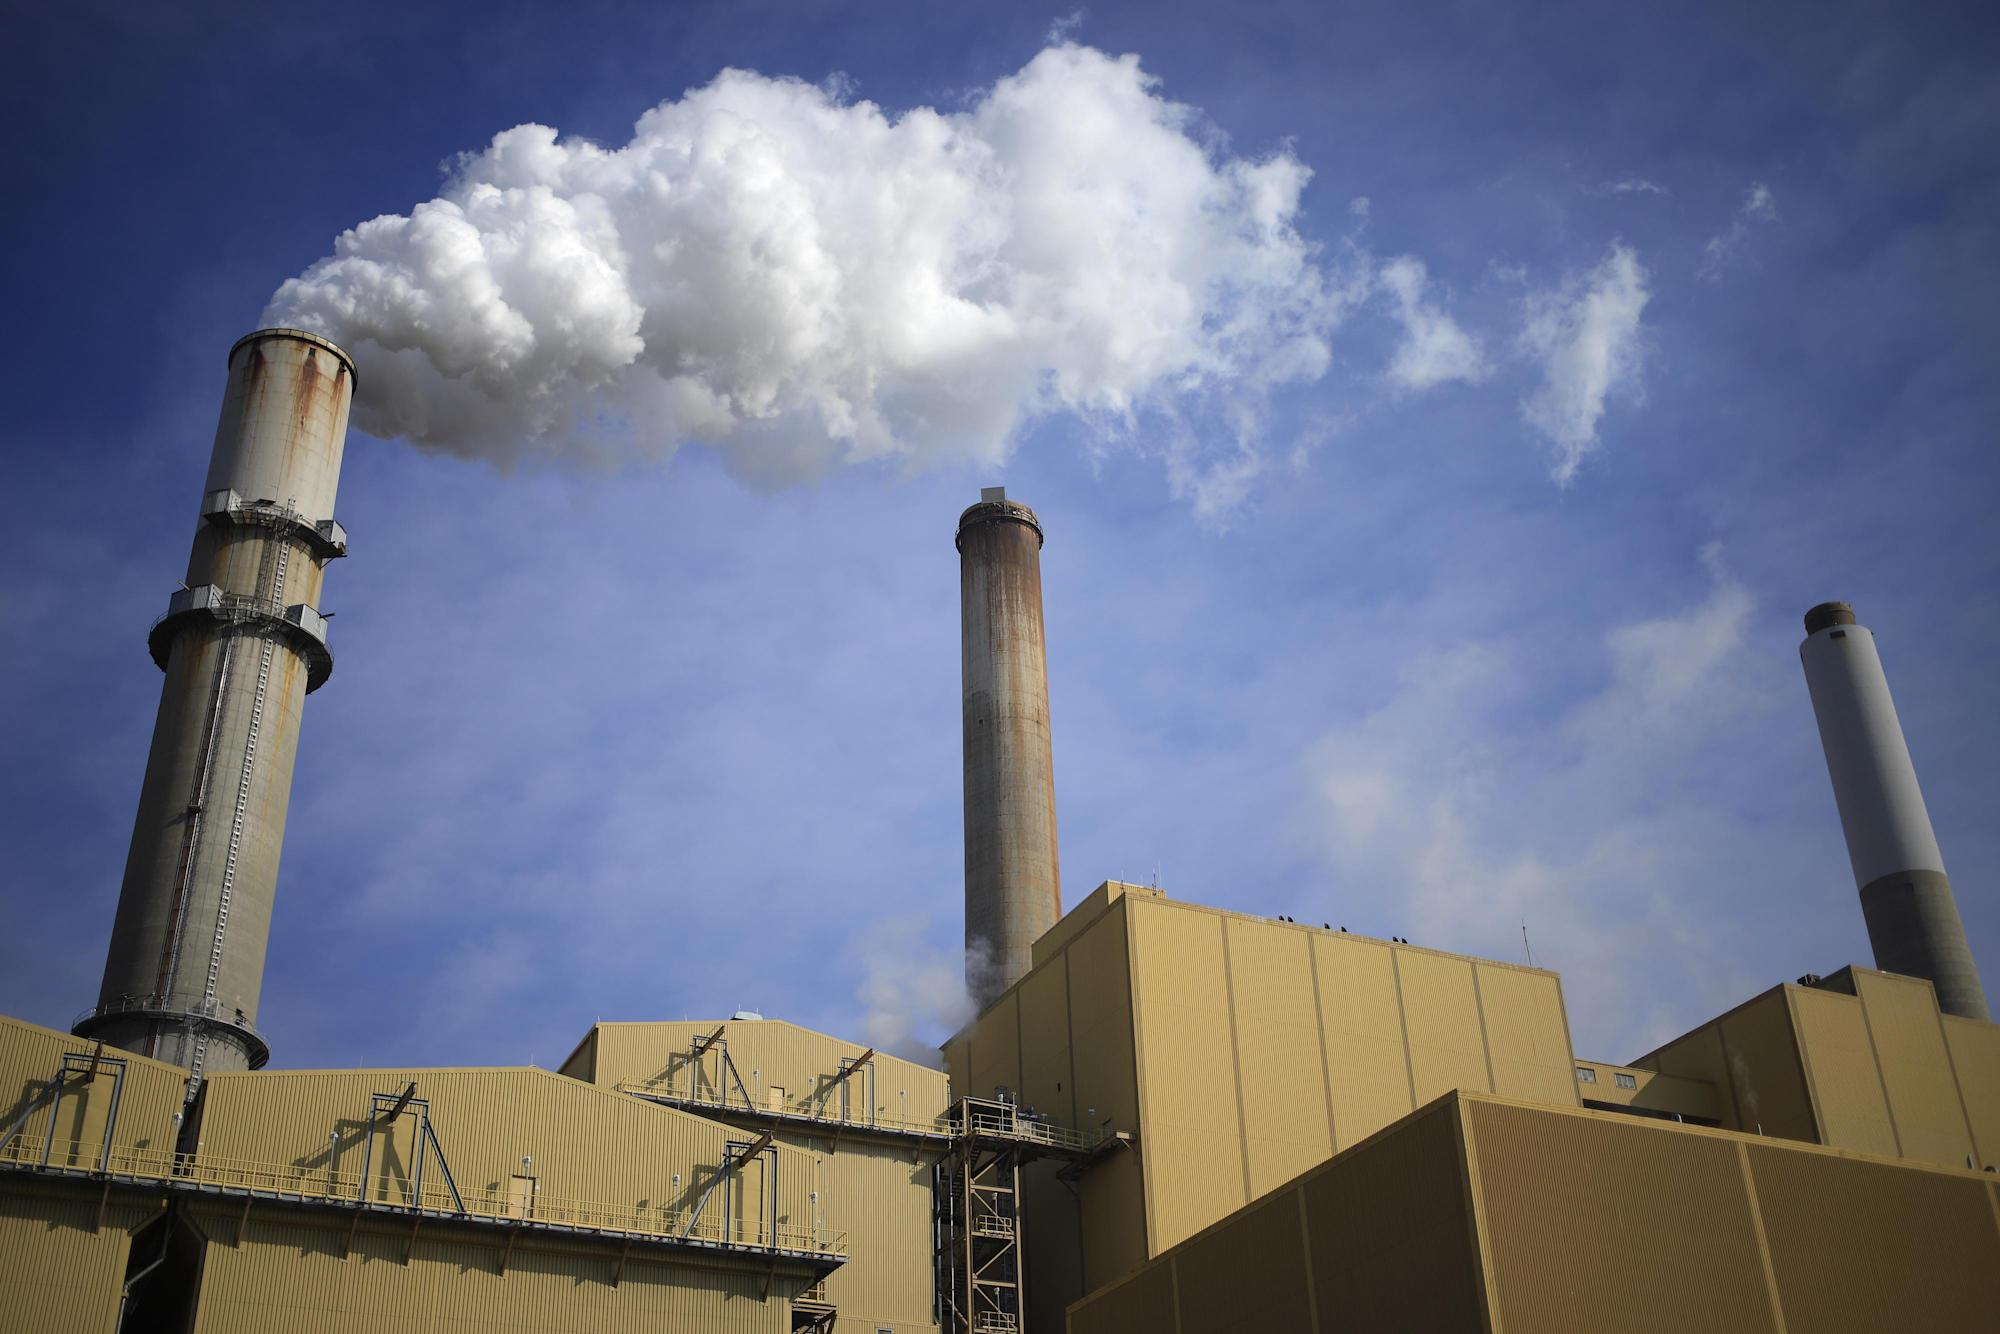 Biden to vow to cut greenhouse gas emissions by 50% from 2005 levels